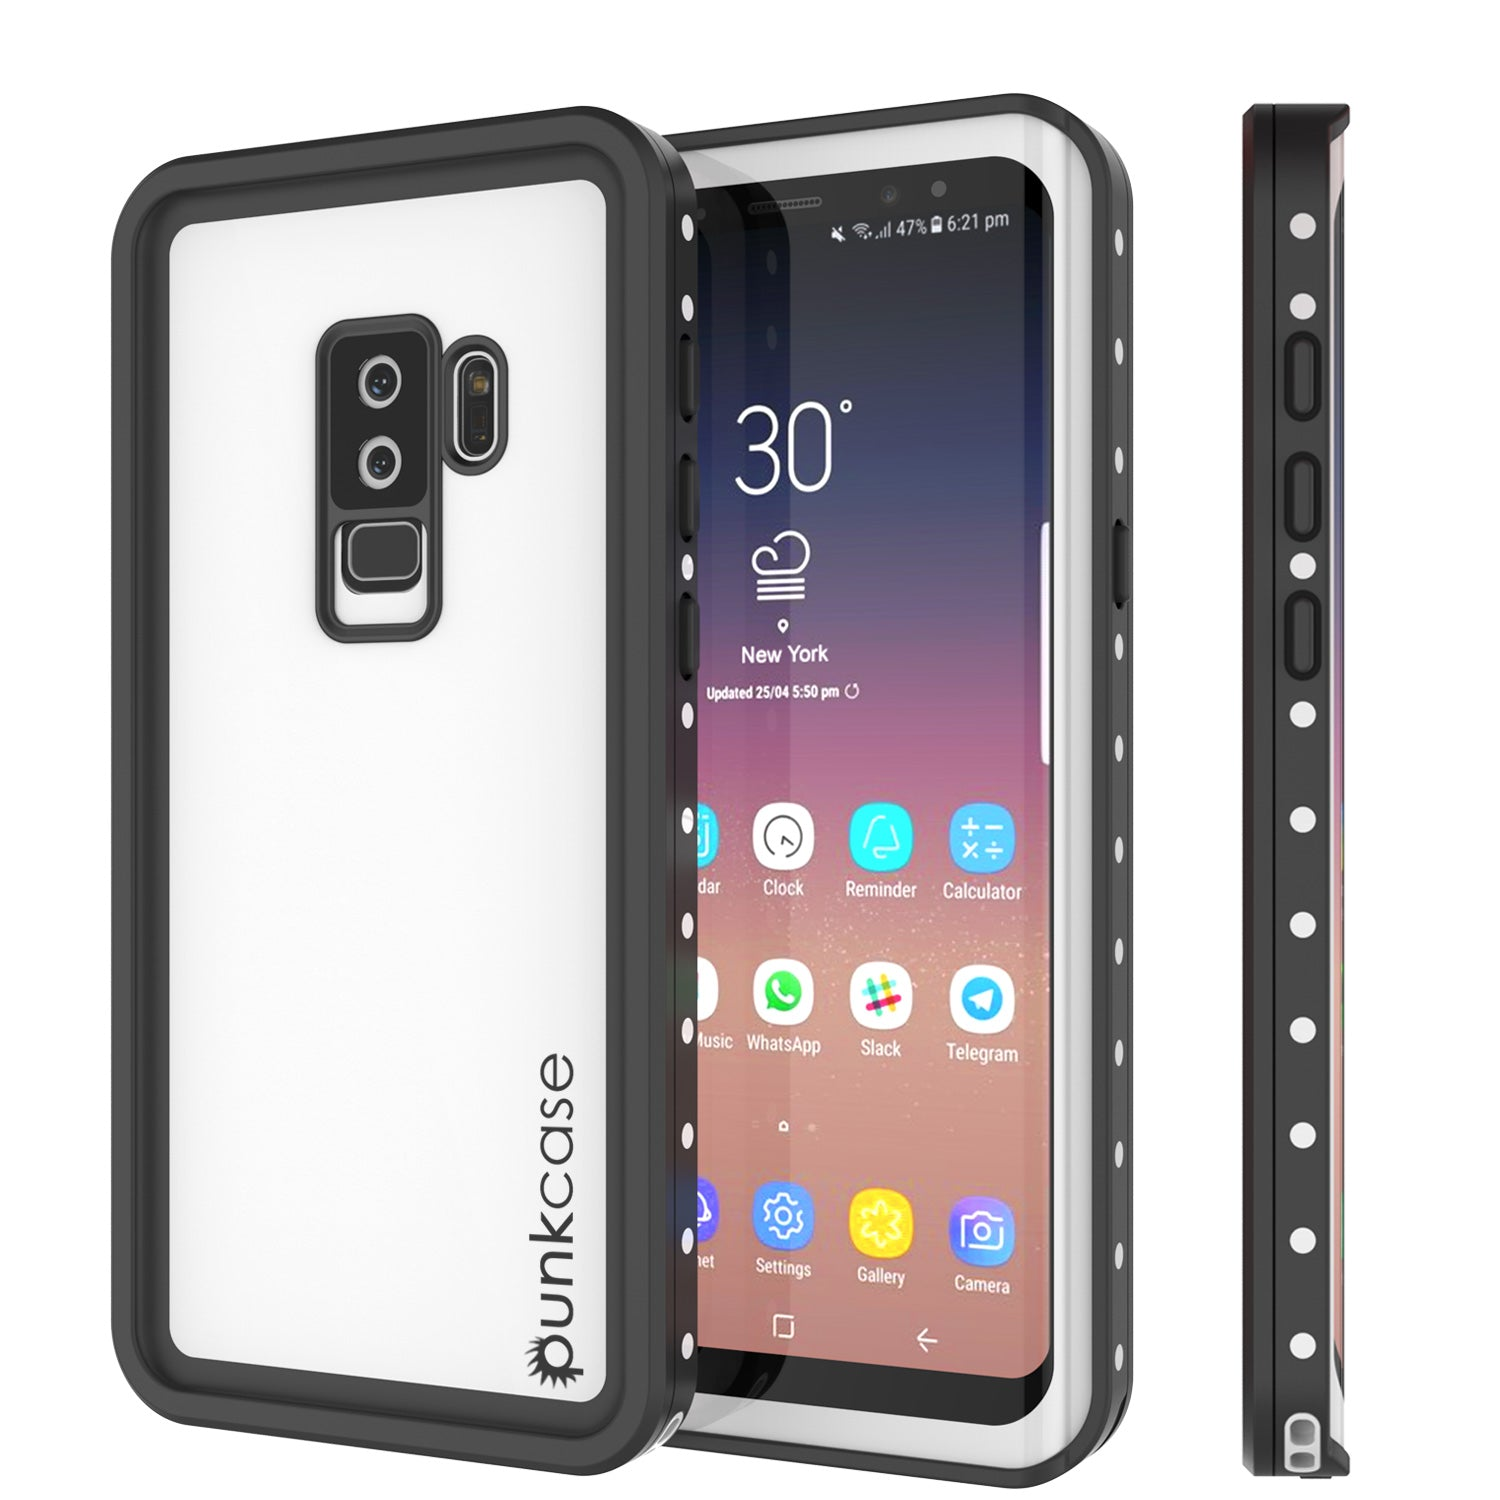 newest 81b98 5af51 Galaxy S9 Plus Waterproof Case, Punkcase StudStar White Thin 6.6ft  Underwater IP68 Shock/Snow Proof